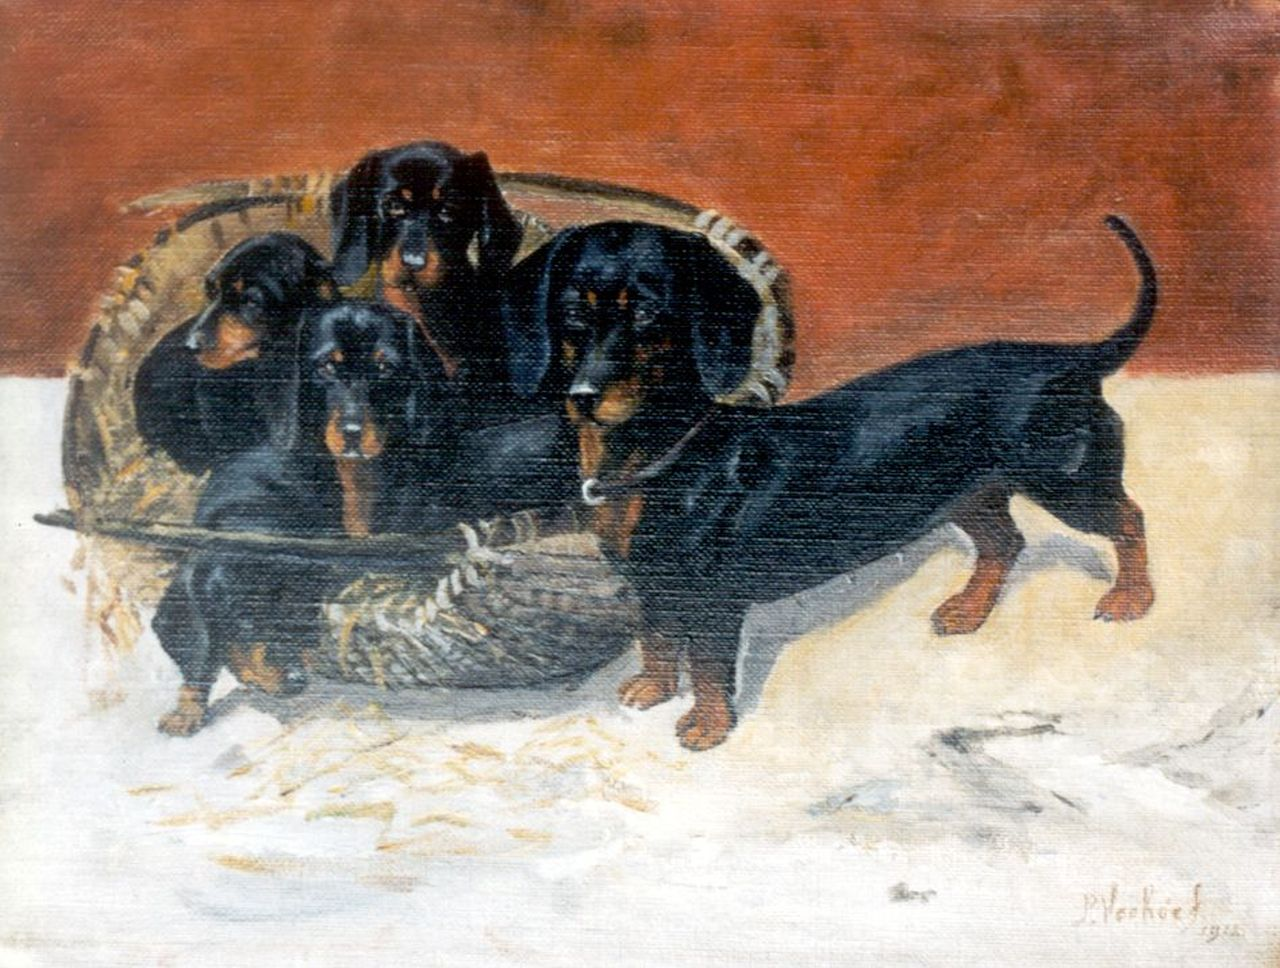 Pieter Verhoeff | Teckel with puppies, oil on canvas, 22.2 x 29.1 cm, signed l.r. and dated 1912